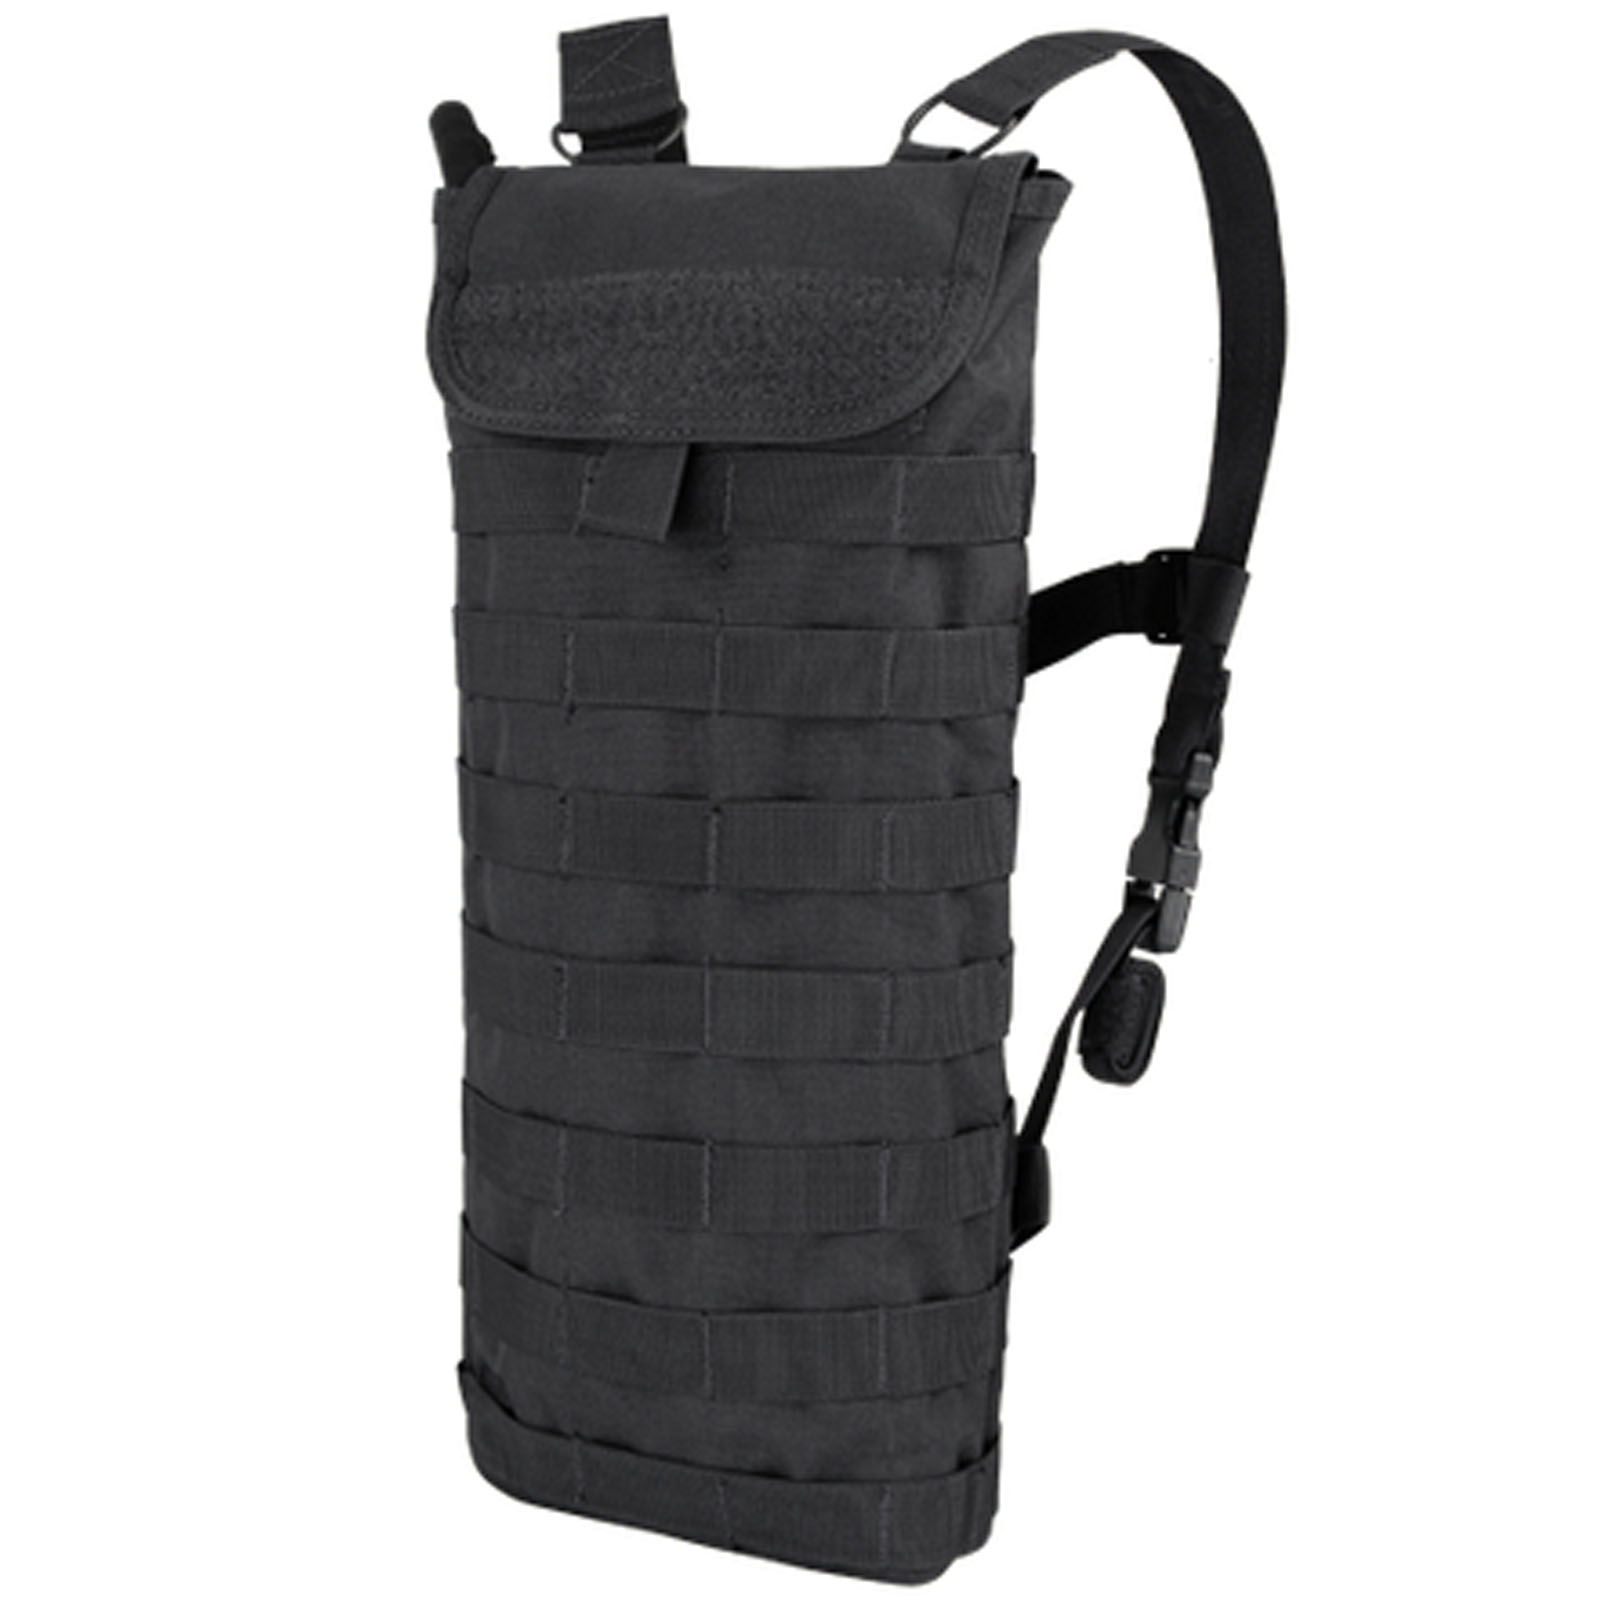 Condor HCB MOLLE Water Hydration Carrier Backpack - Black